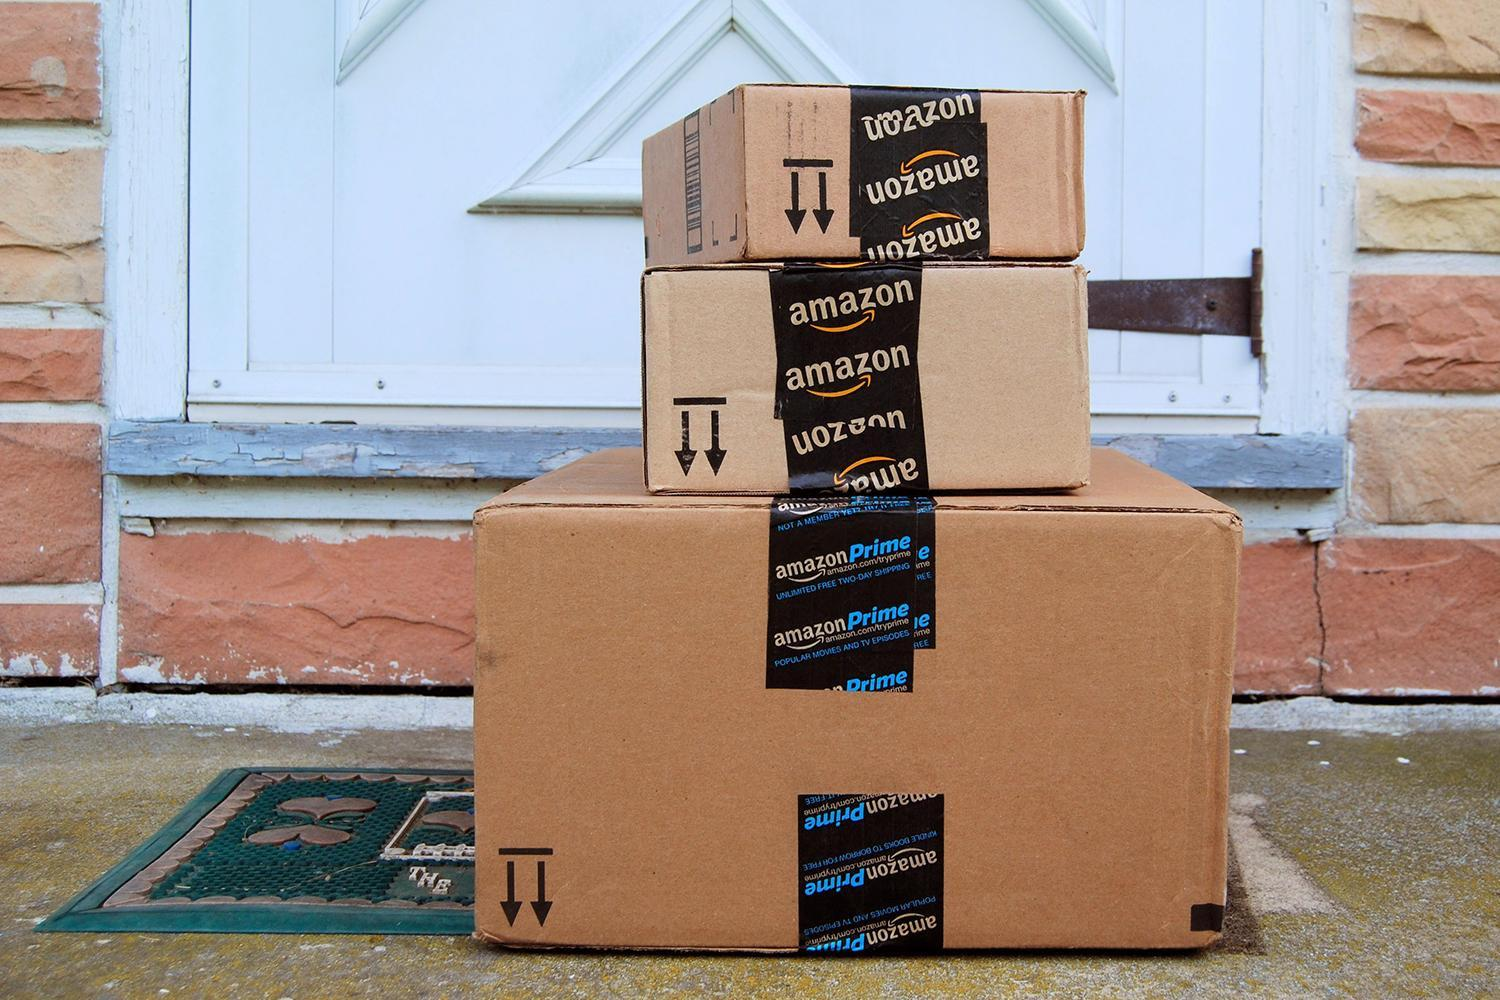 Amazon may have a secret mission to take on UPS and Fedex